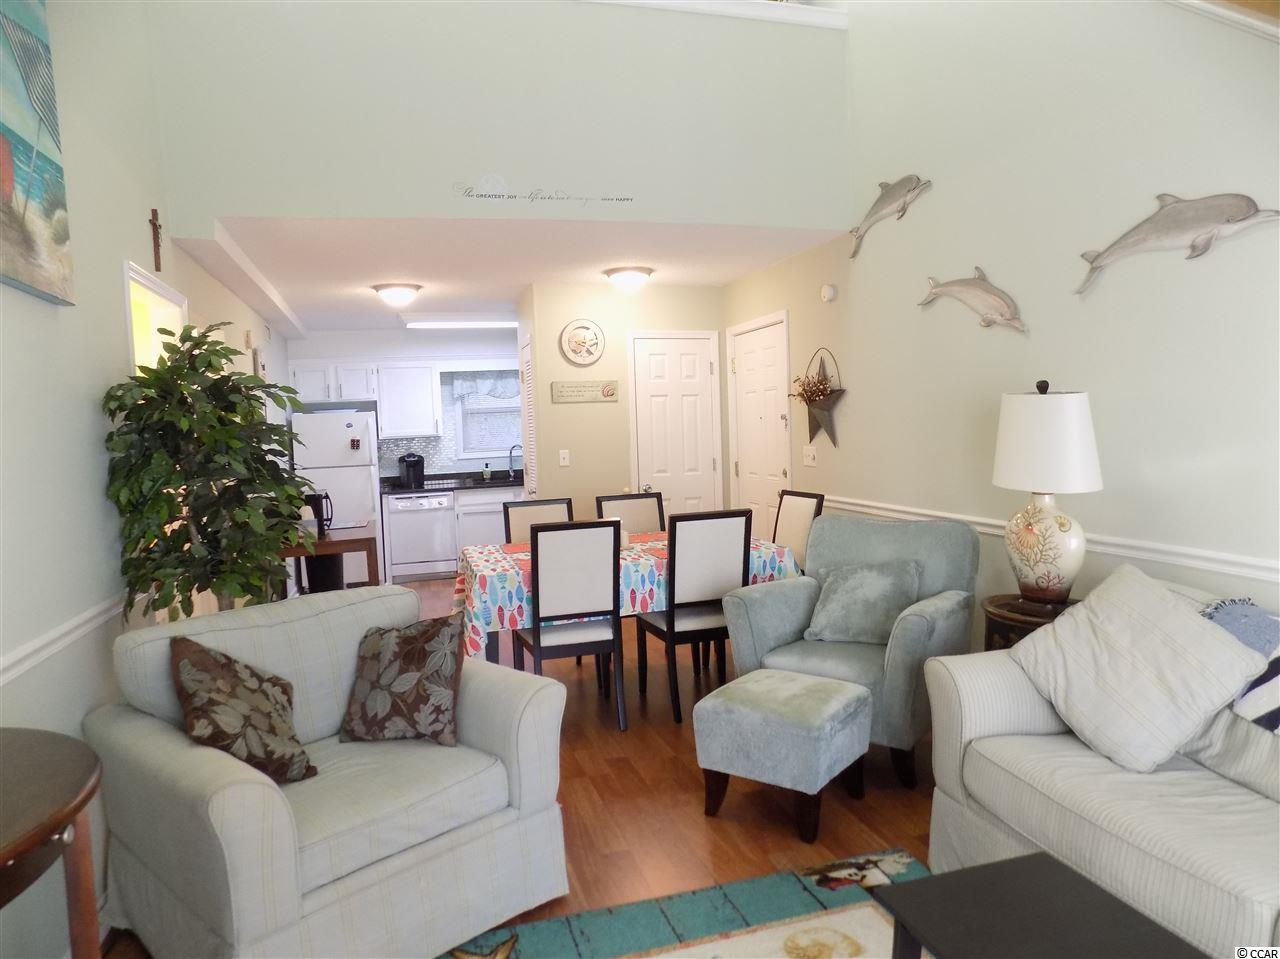 Retreat at Glenns Bay condo for sale in Surfside Beach, SC